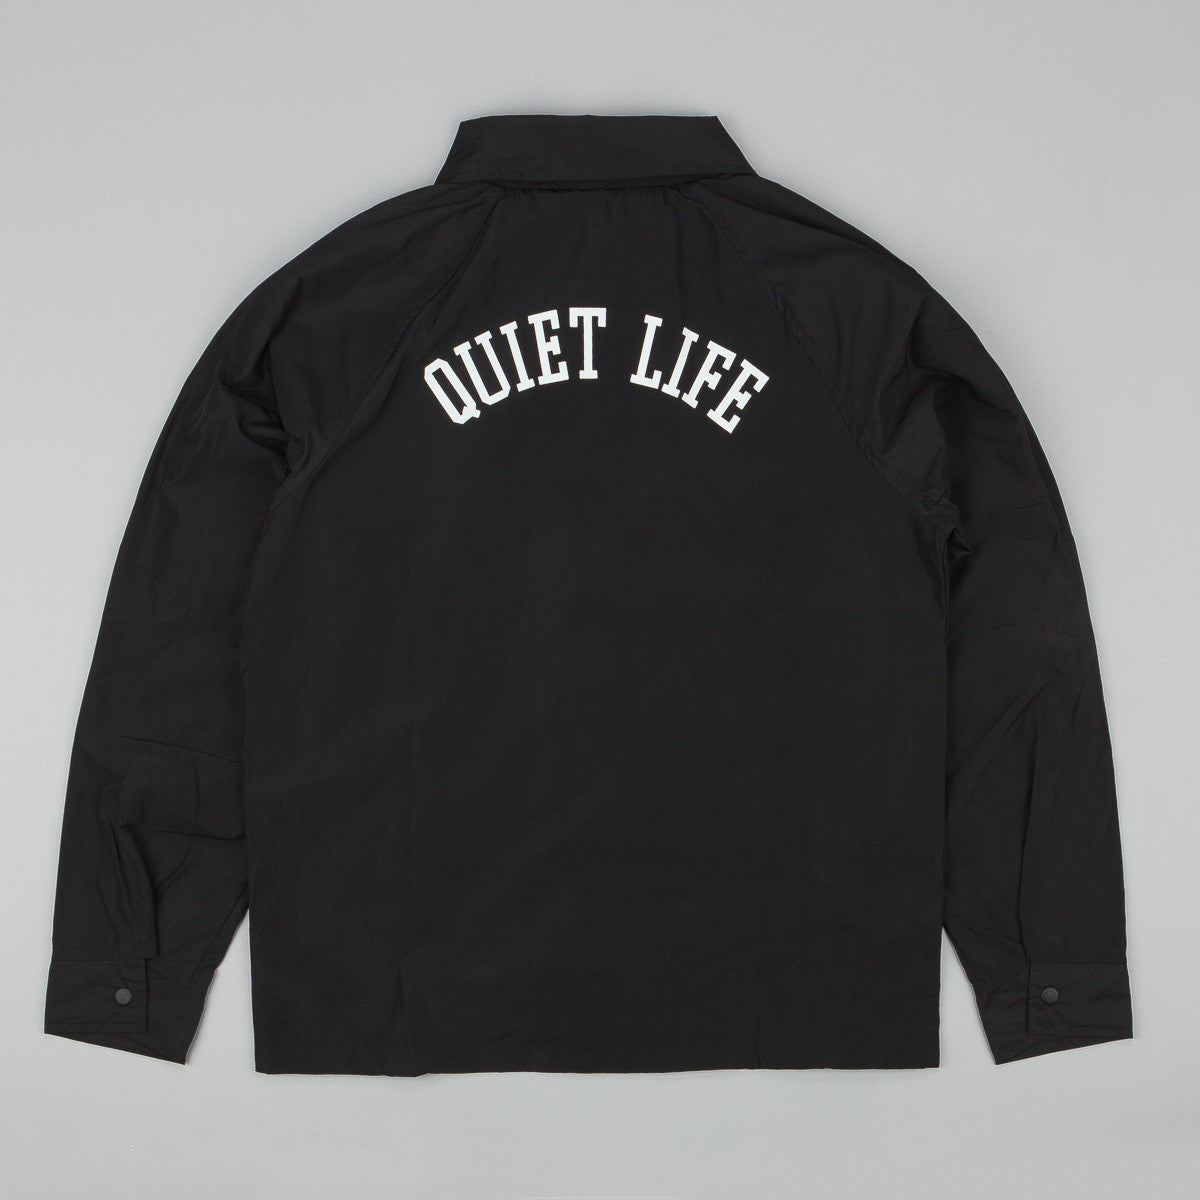 The Quiet Life Garage Jacket - Black